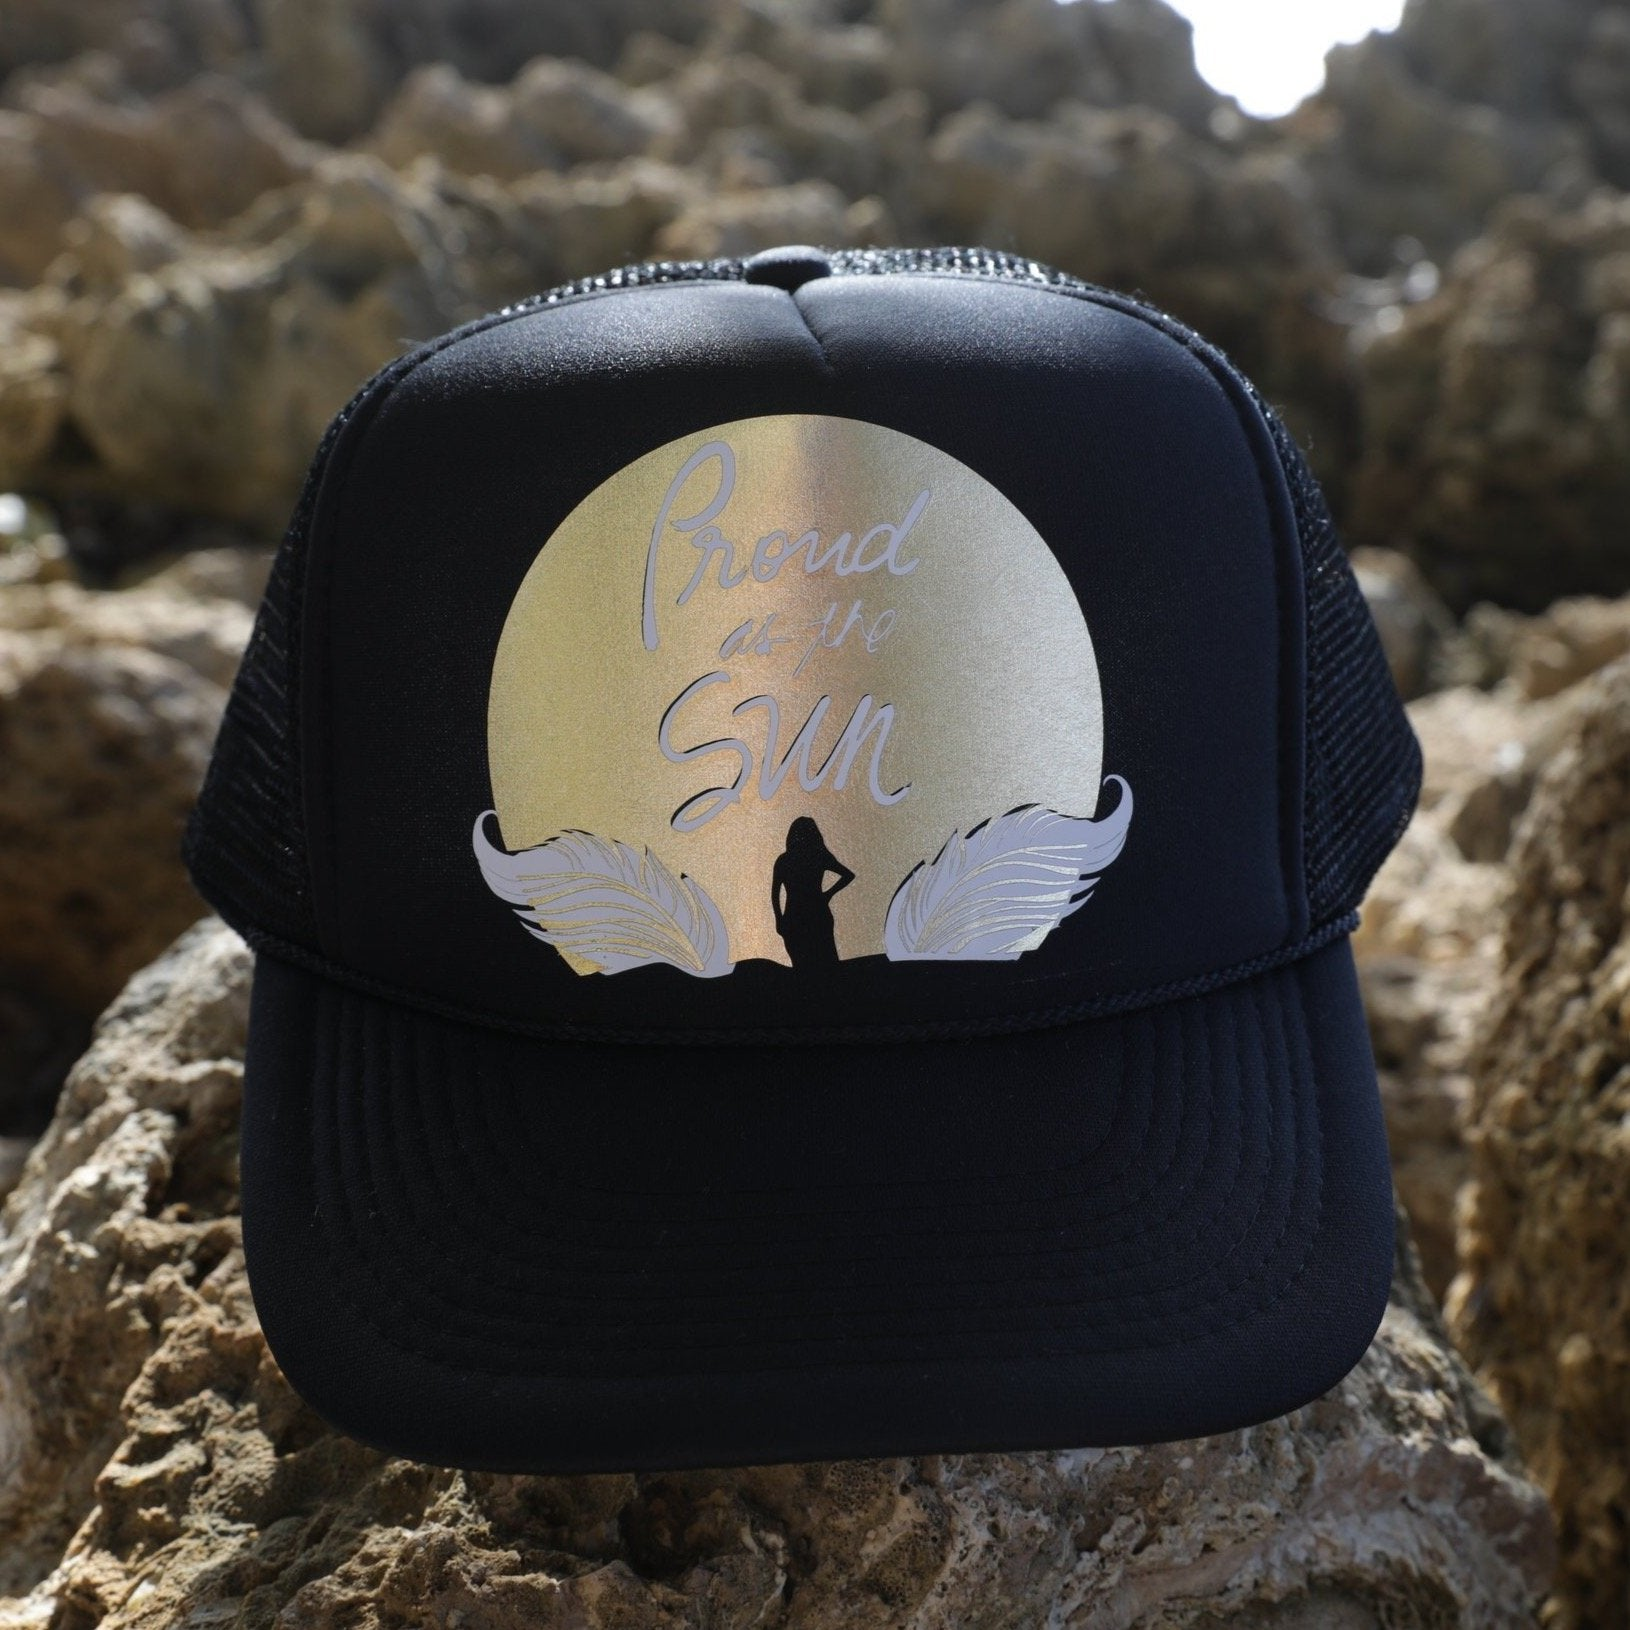 Proud as the Sun Adult Trucker Hat